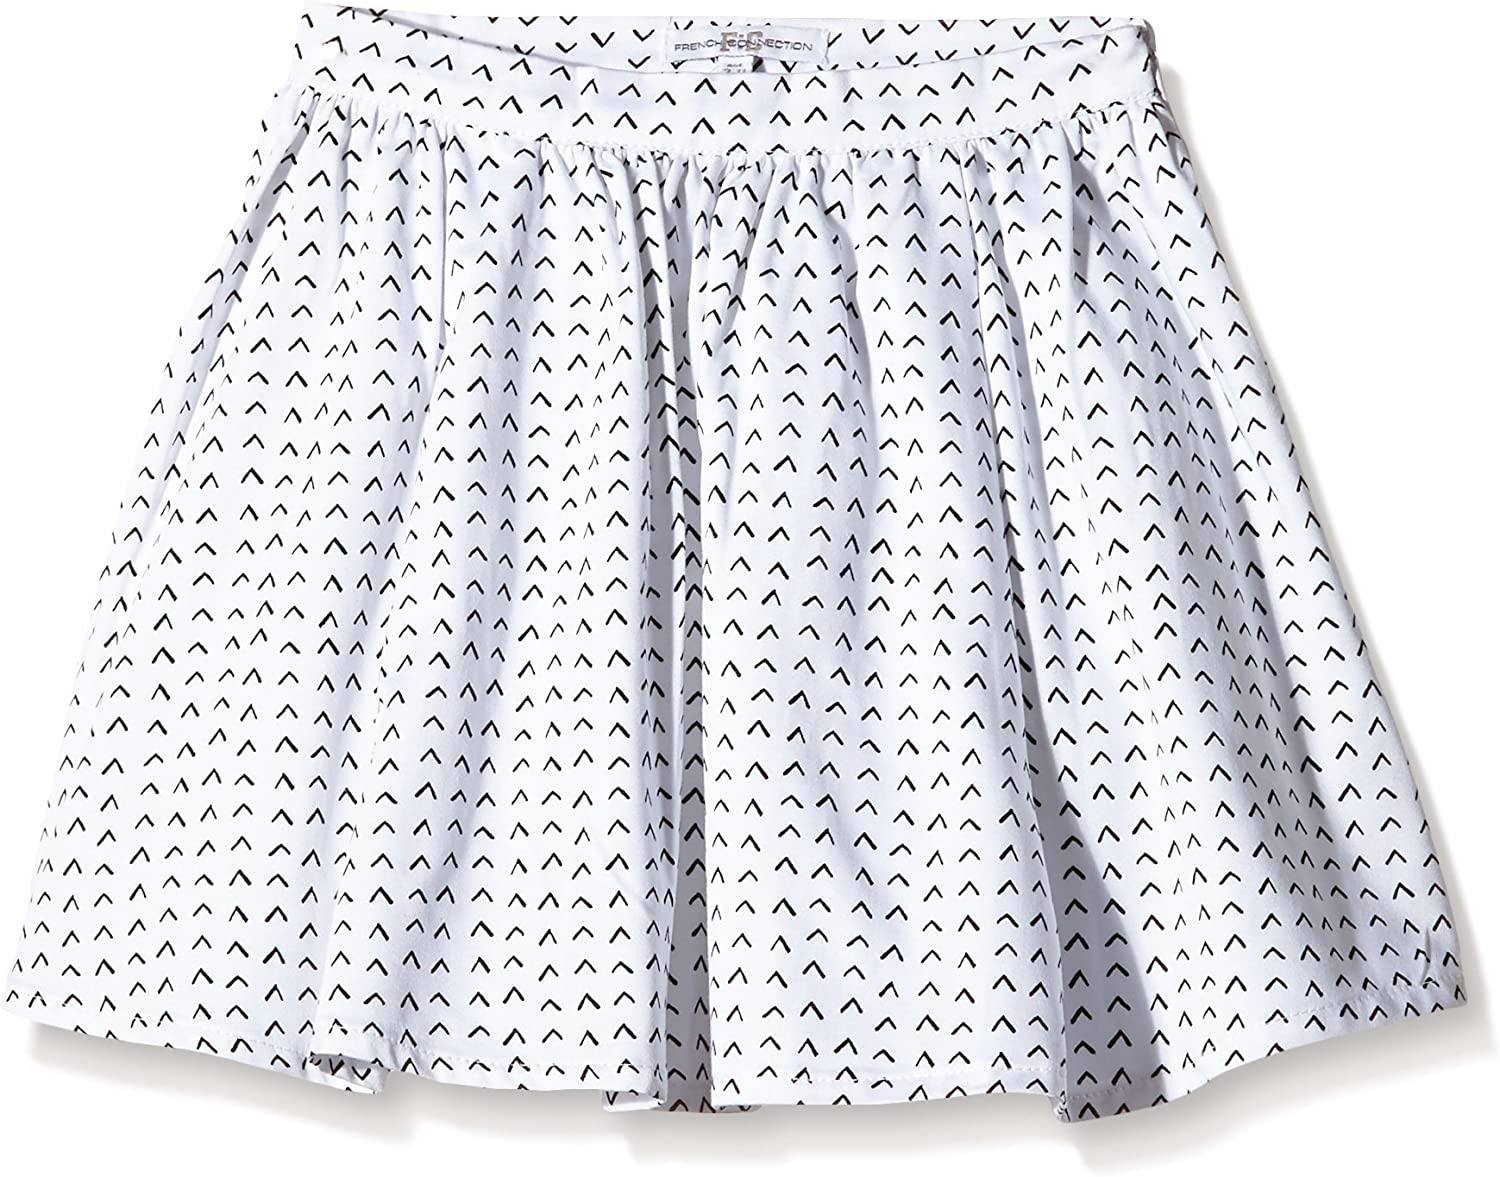 Kid Nation Girls Soft Cotton Ruffle Scooter Skirt with Under Pants 4-12 Years